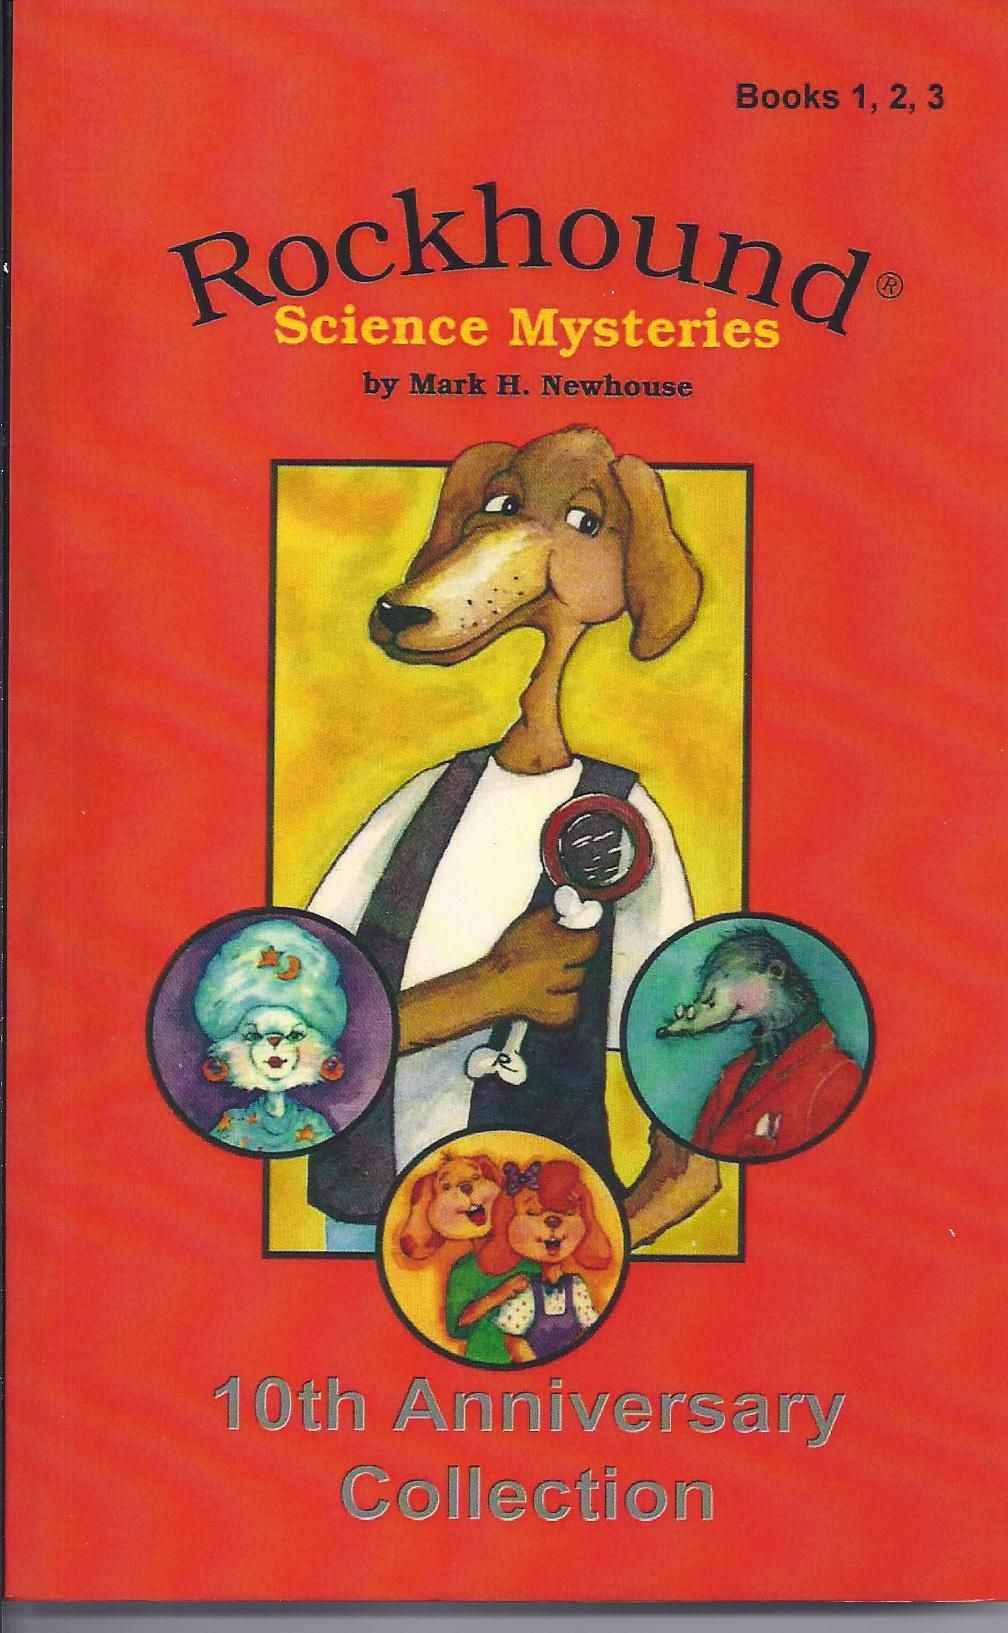 Catch crazy crooks by making orange juice ice pops and other fun experimentsTeachers' Choice Award- Learning Magazine. Nine mysteries. Amazon.com, Kindle, Nook